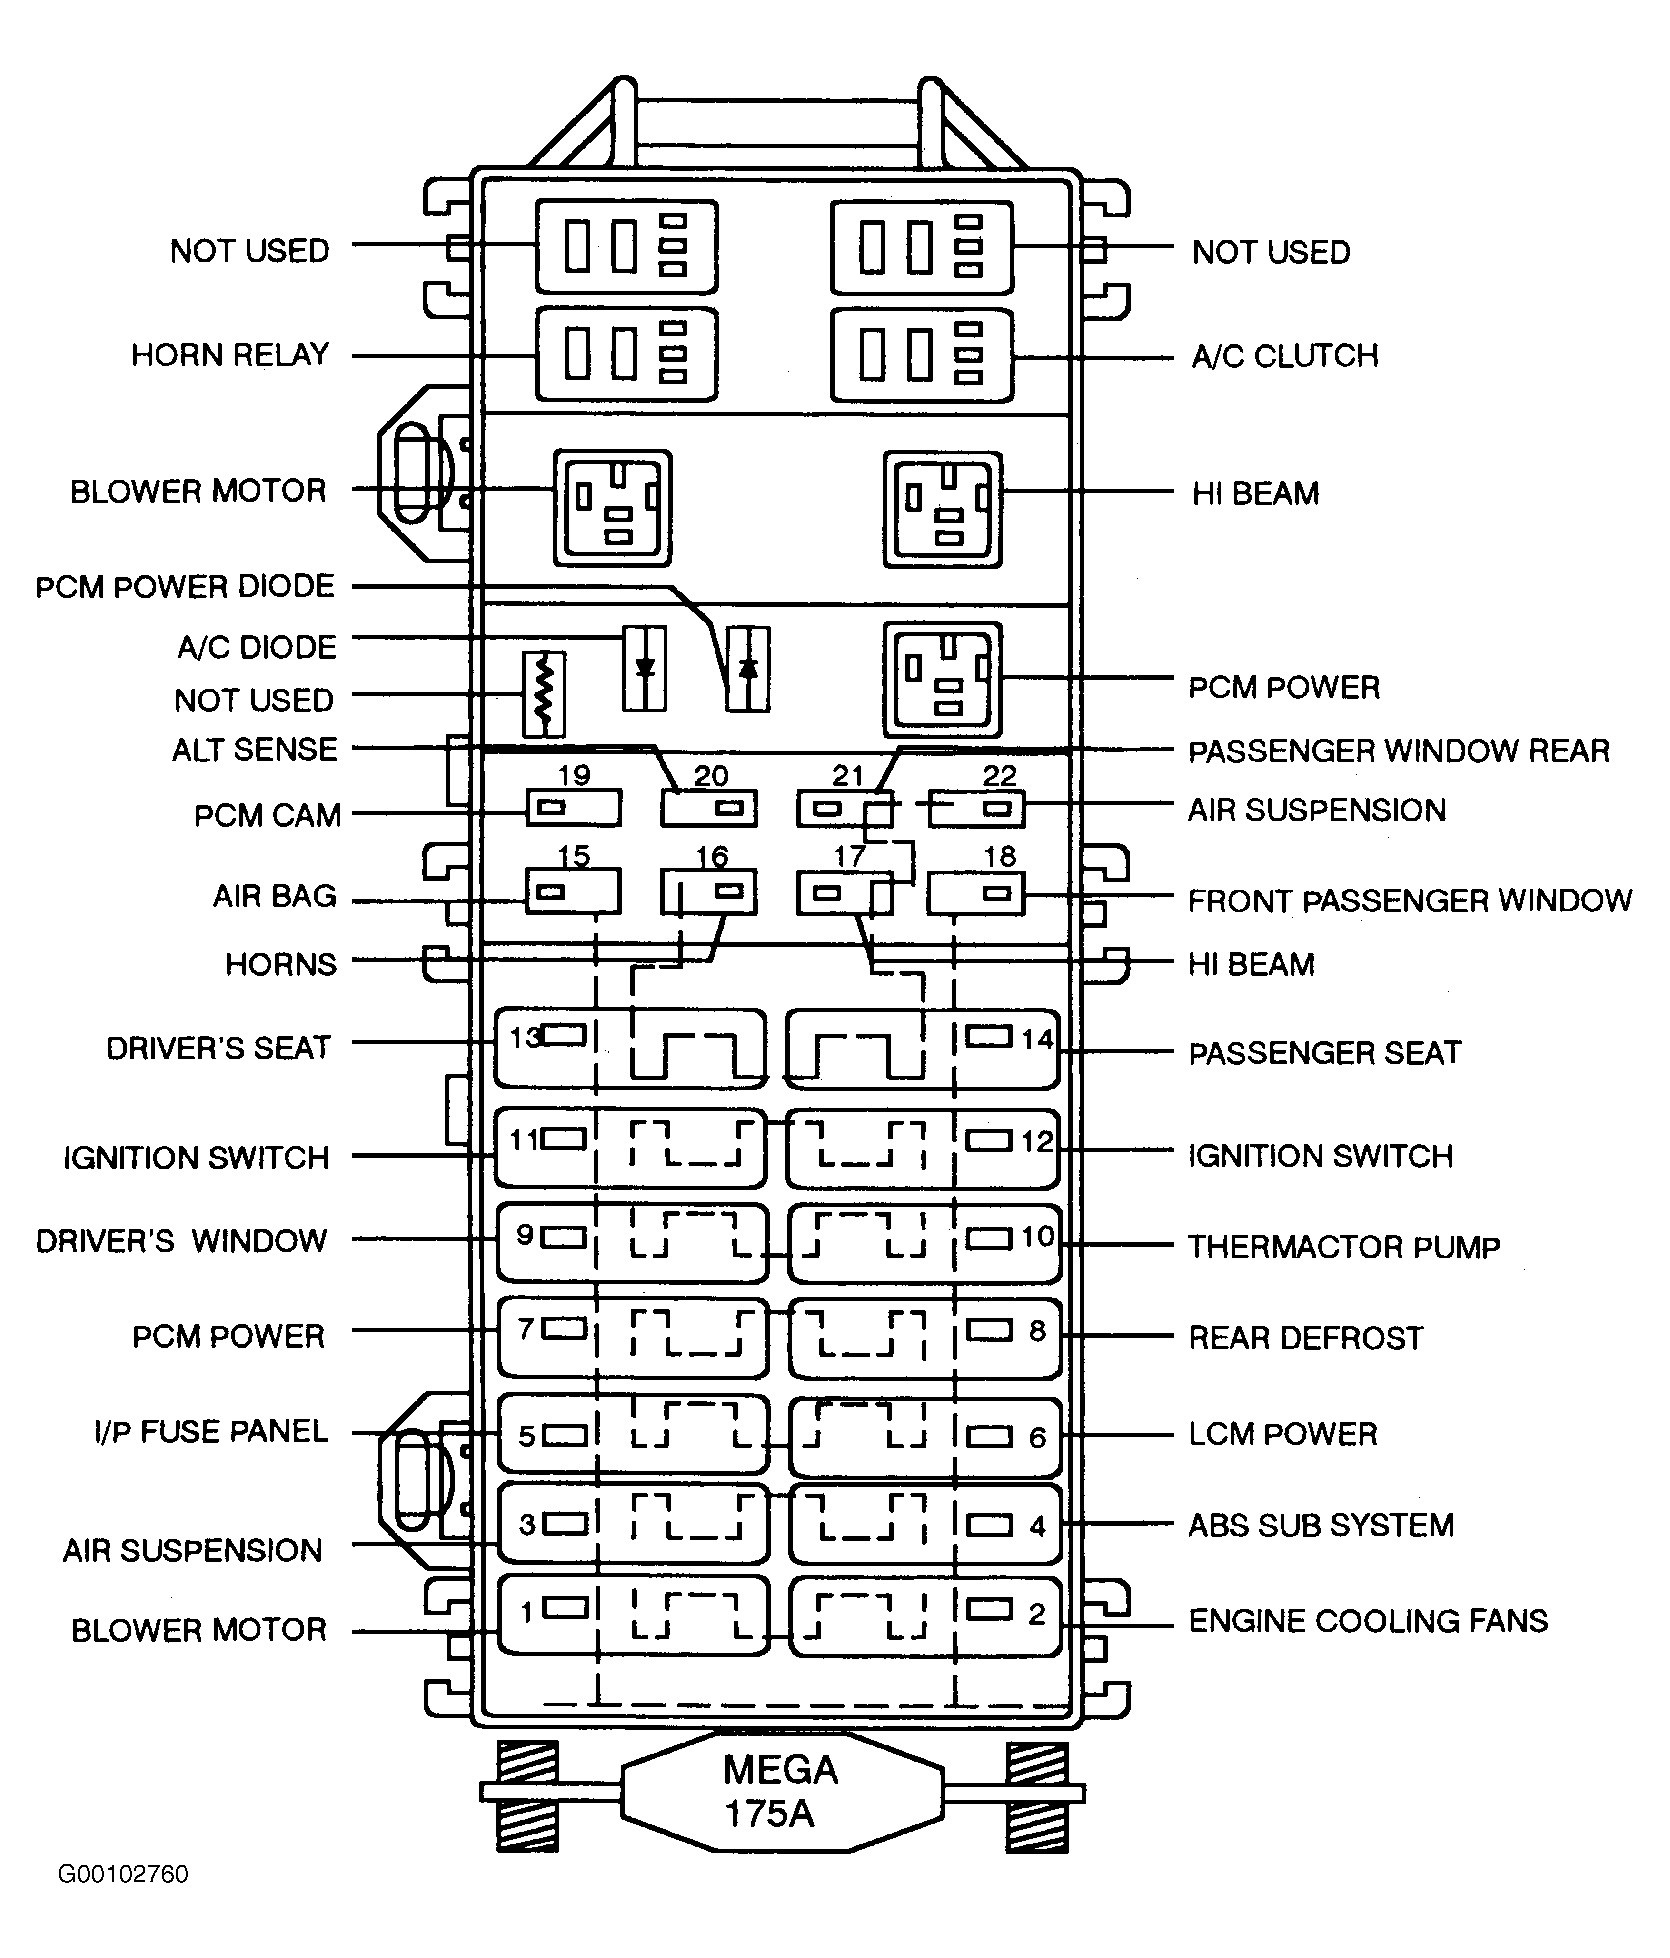 Diagram Of A Circuit Breaker Box